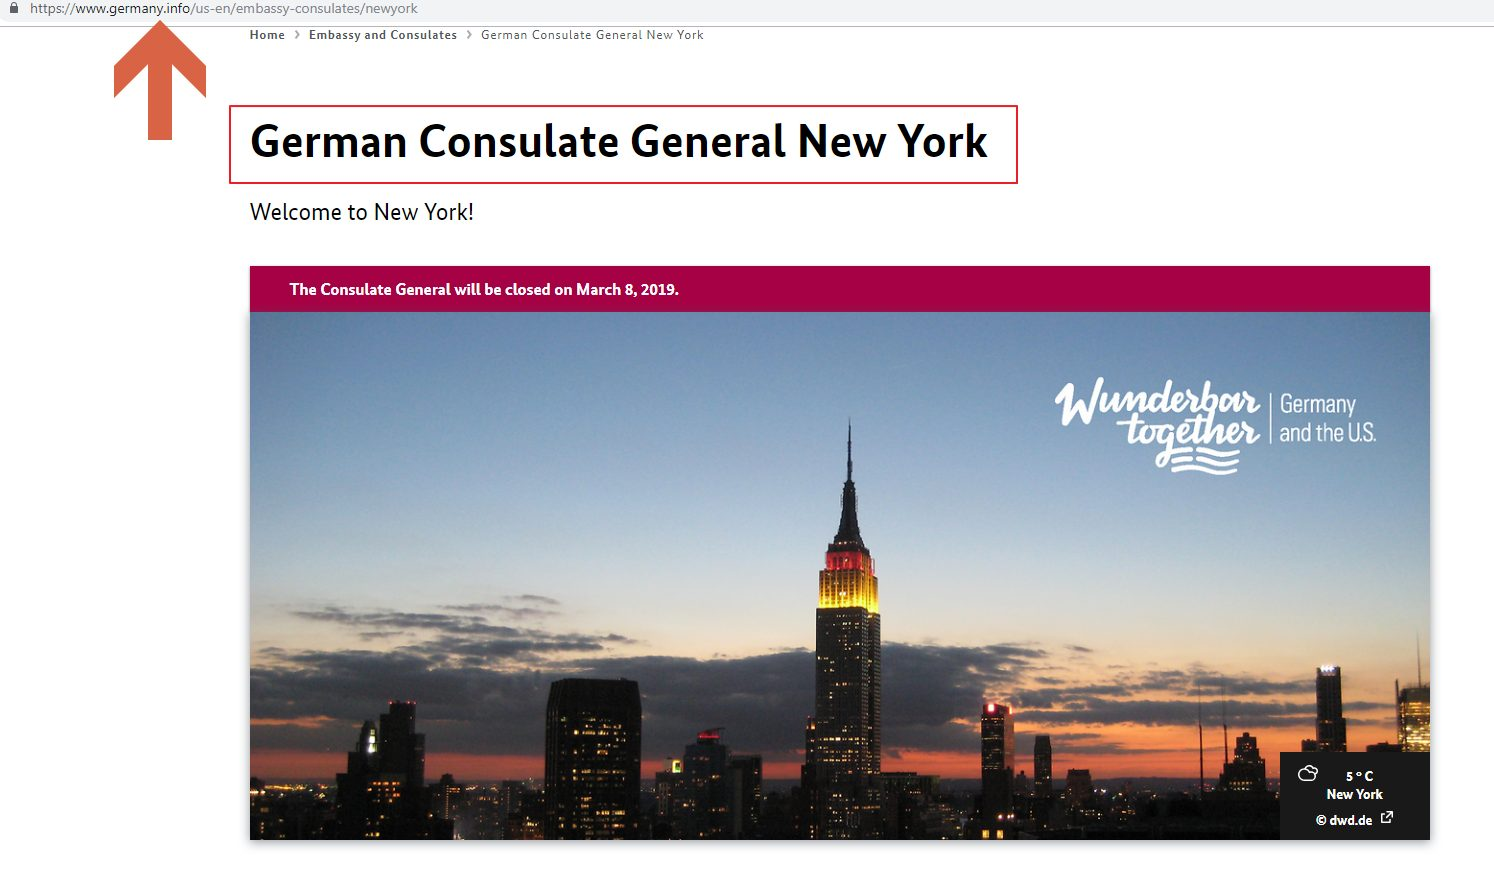 Germany Consulate General New York website